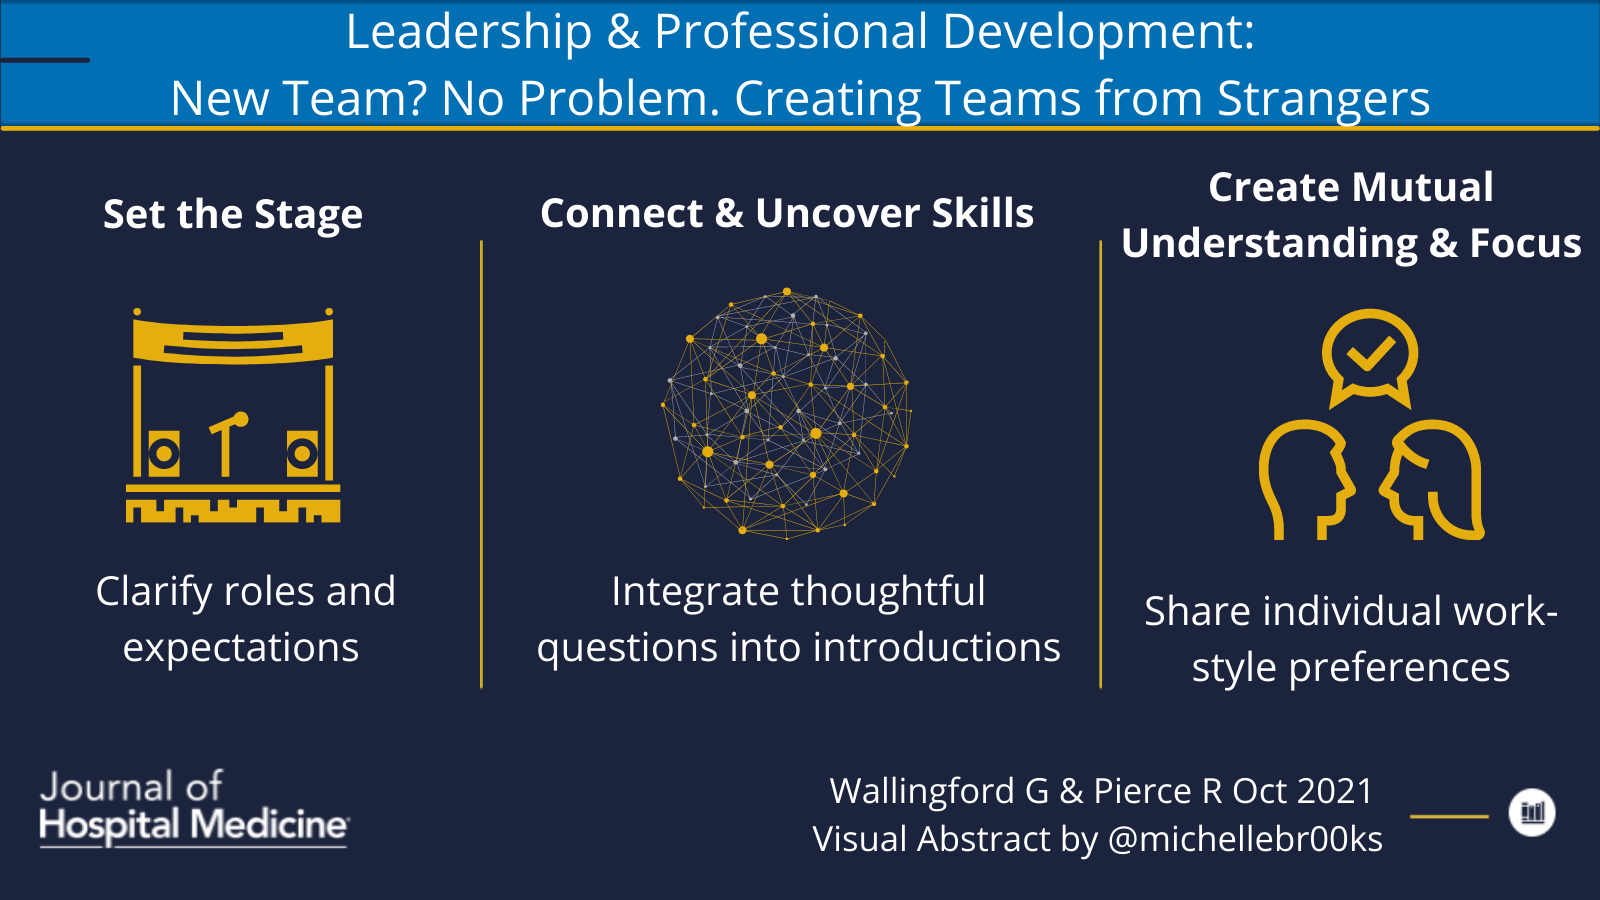 Leadership & Professional Development: New Team? No Problem. Creating Teams From Strangers